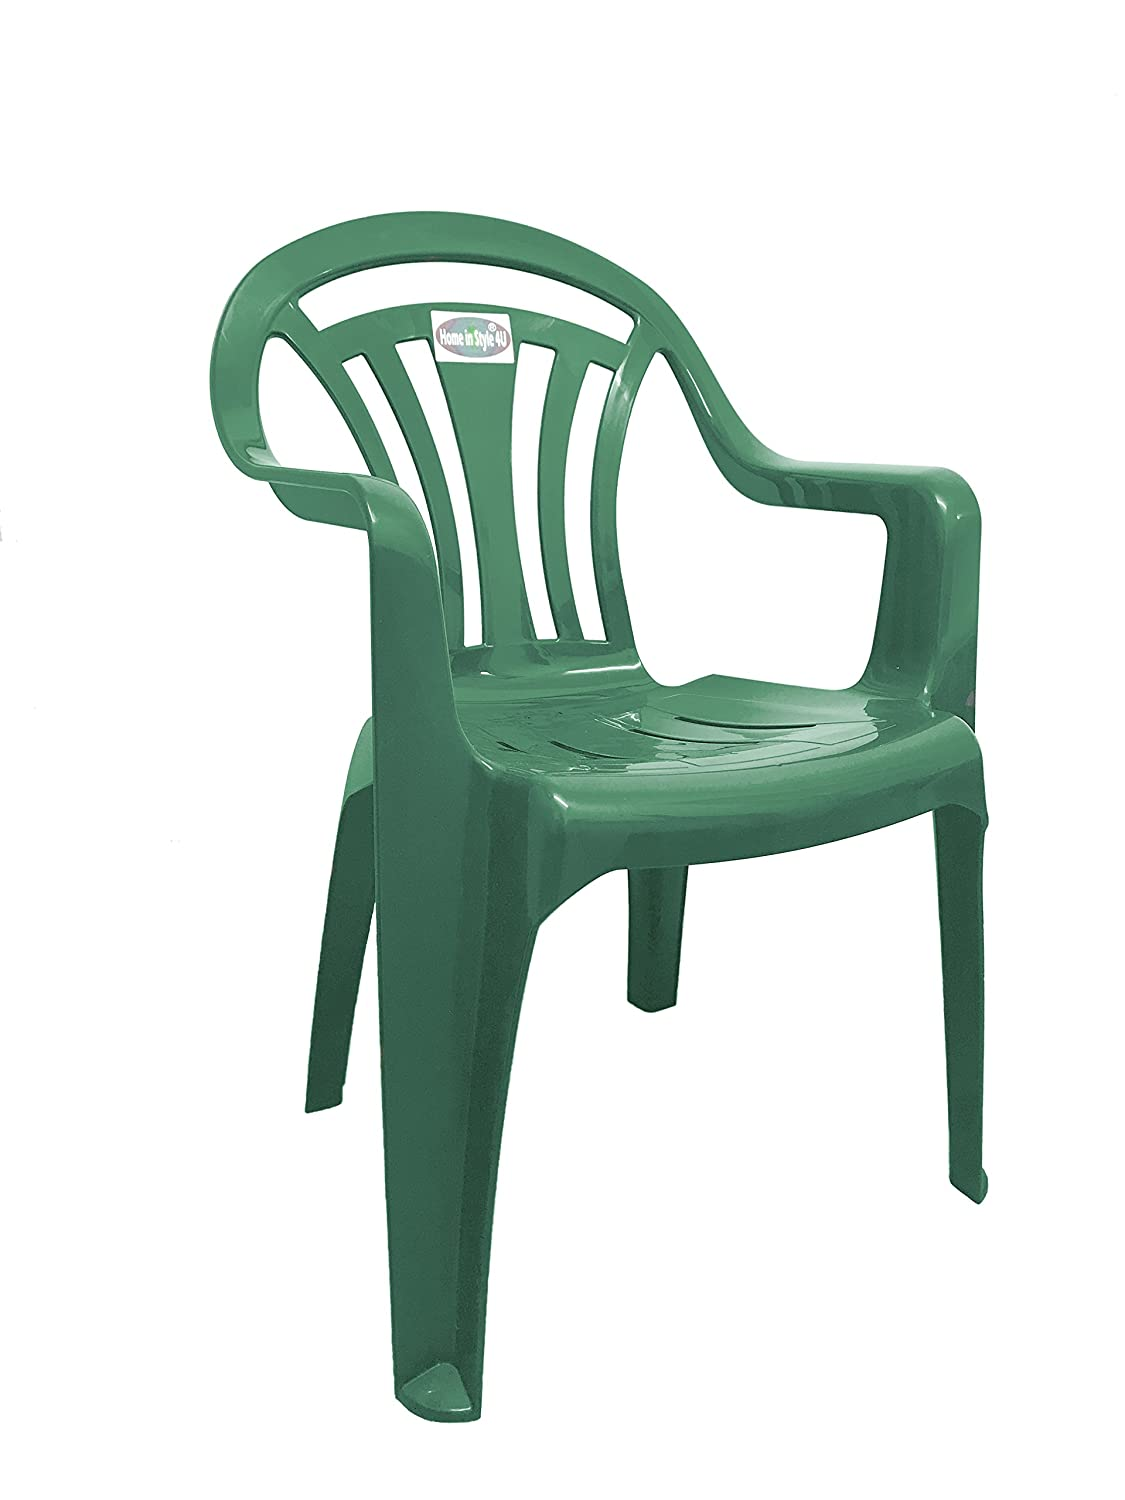 Home In Style 4U® Plastic Low Back Garden Patio Chair Lawn Chairs armchair (Green Low Back Chair)